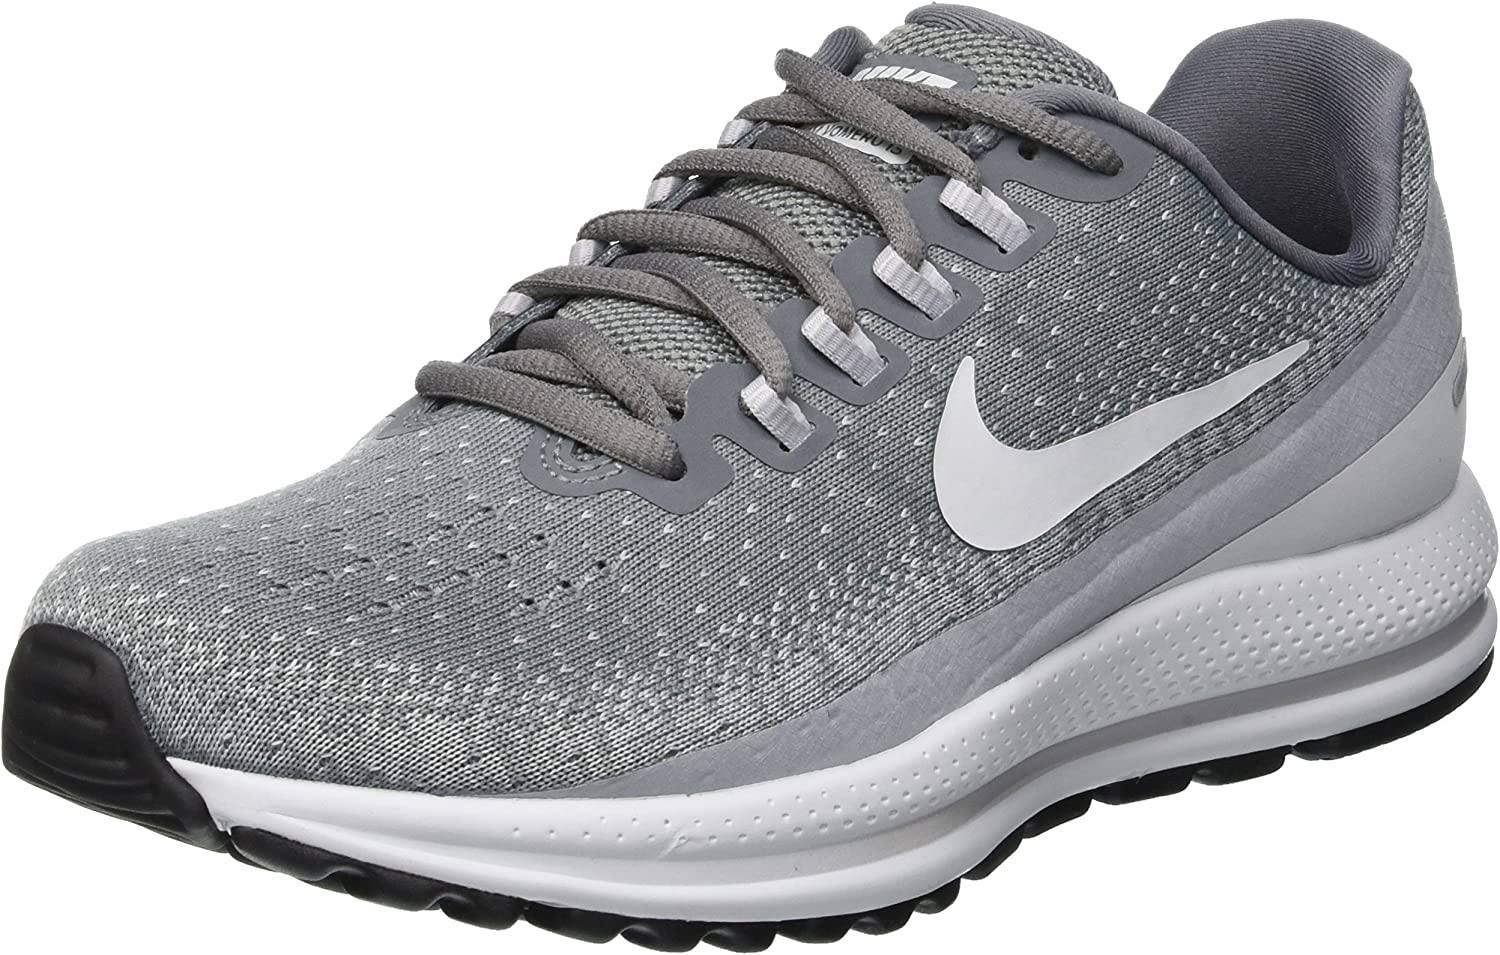 Nike Air Zoom Vomero 13 Laufschuhe | New Style Damen